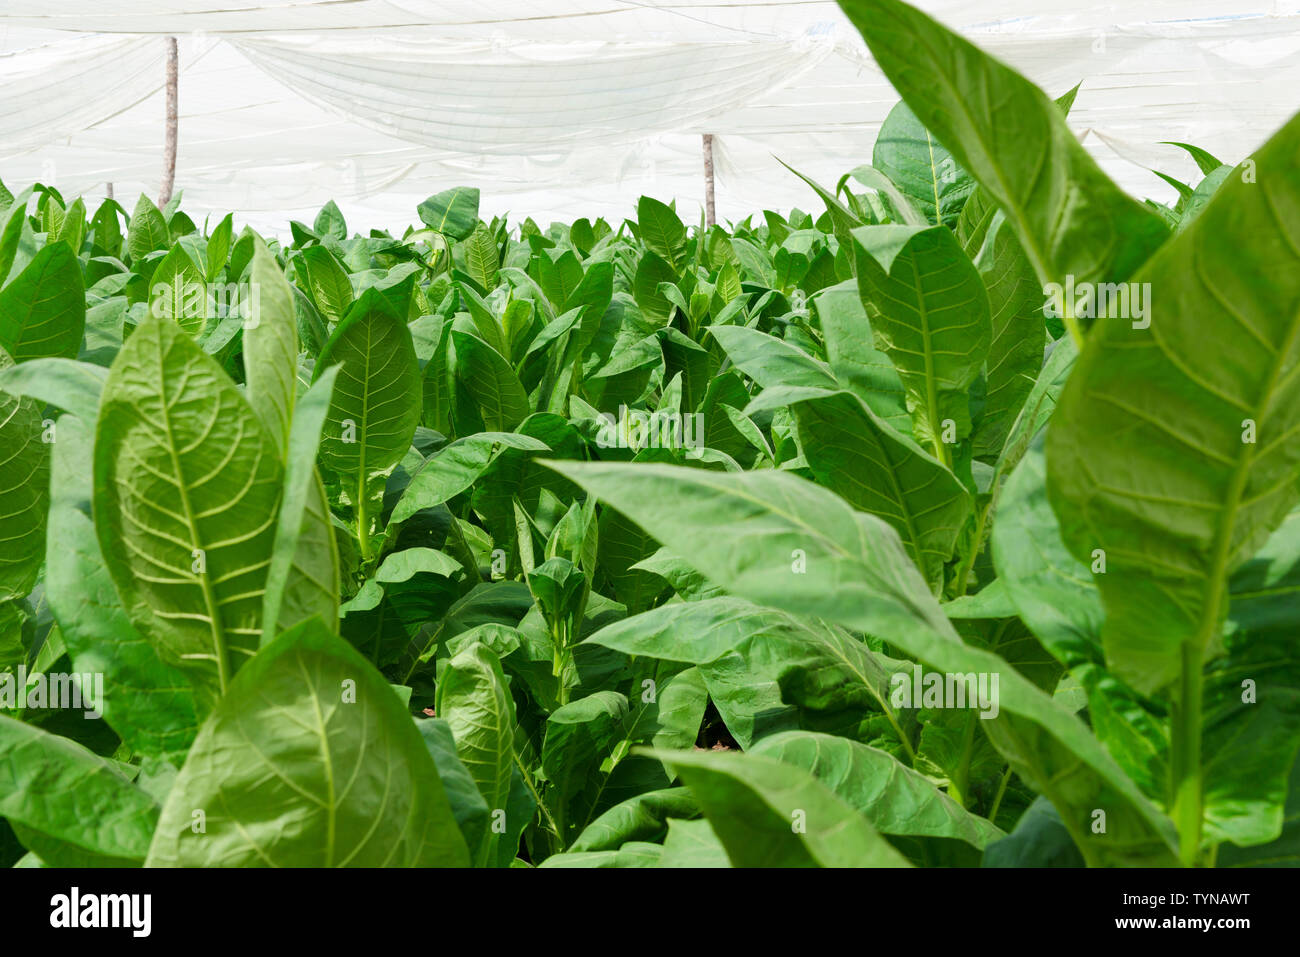 Tobacco leaves growing under cover on farm in the countryside surrounding the village of San Juan y Martinez, Pinar del Rio Province, Cuba - Stock Image